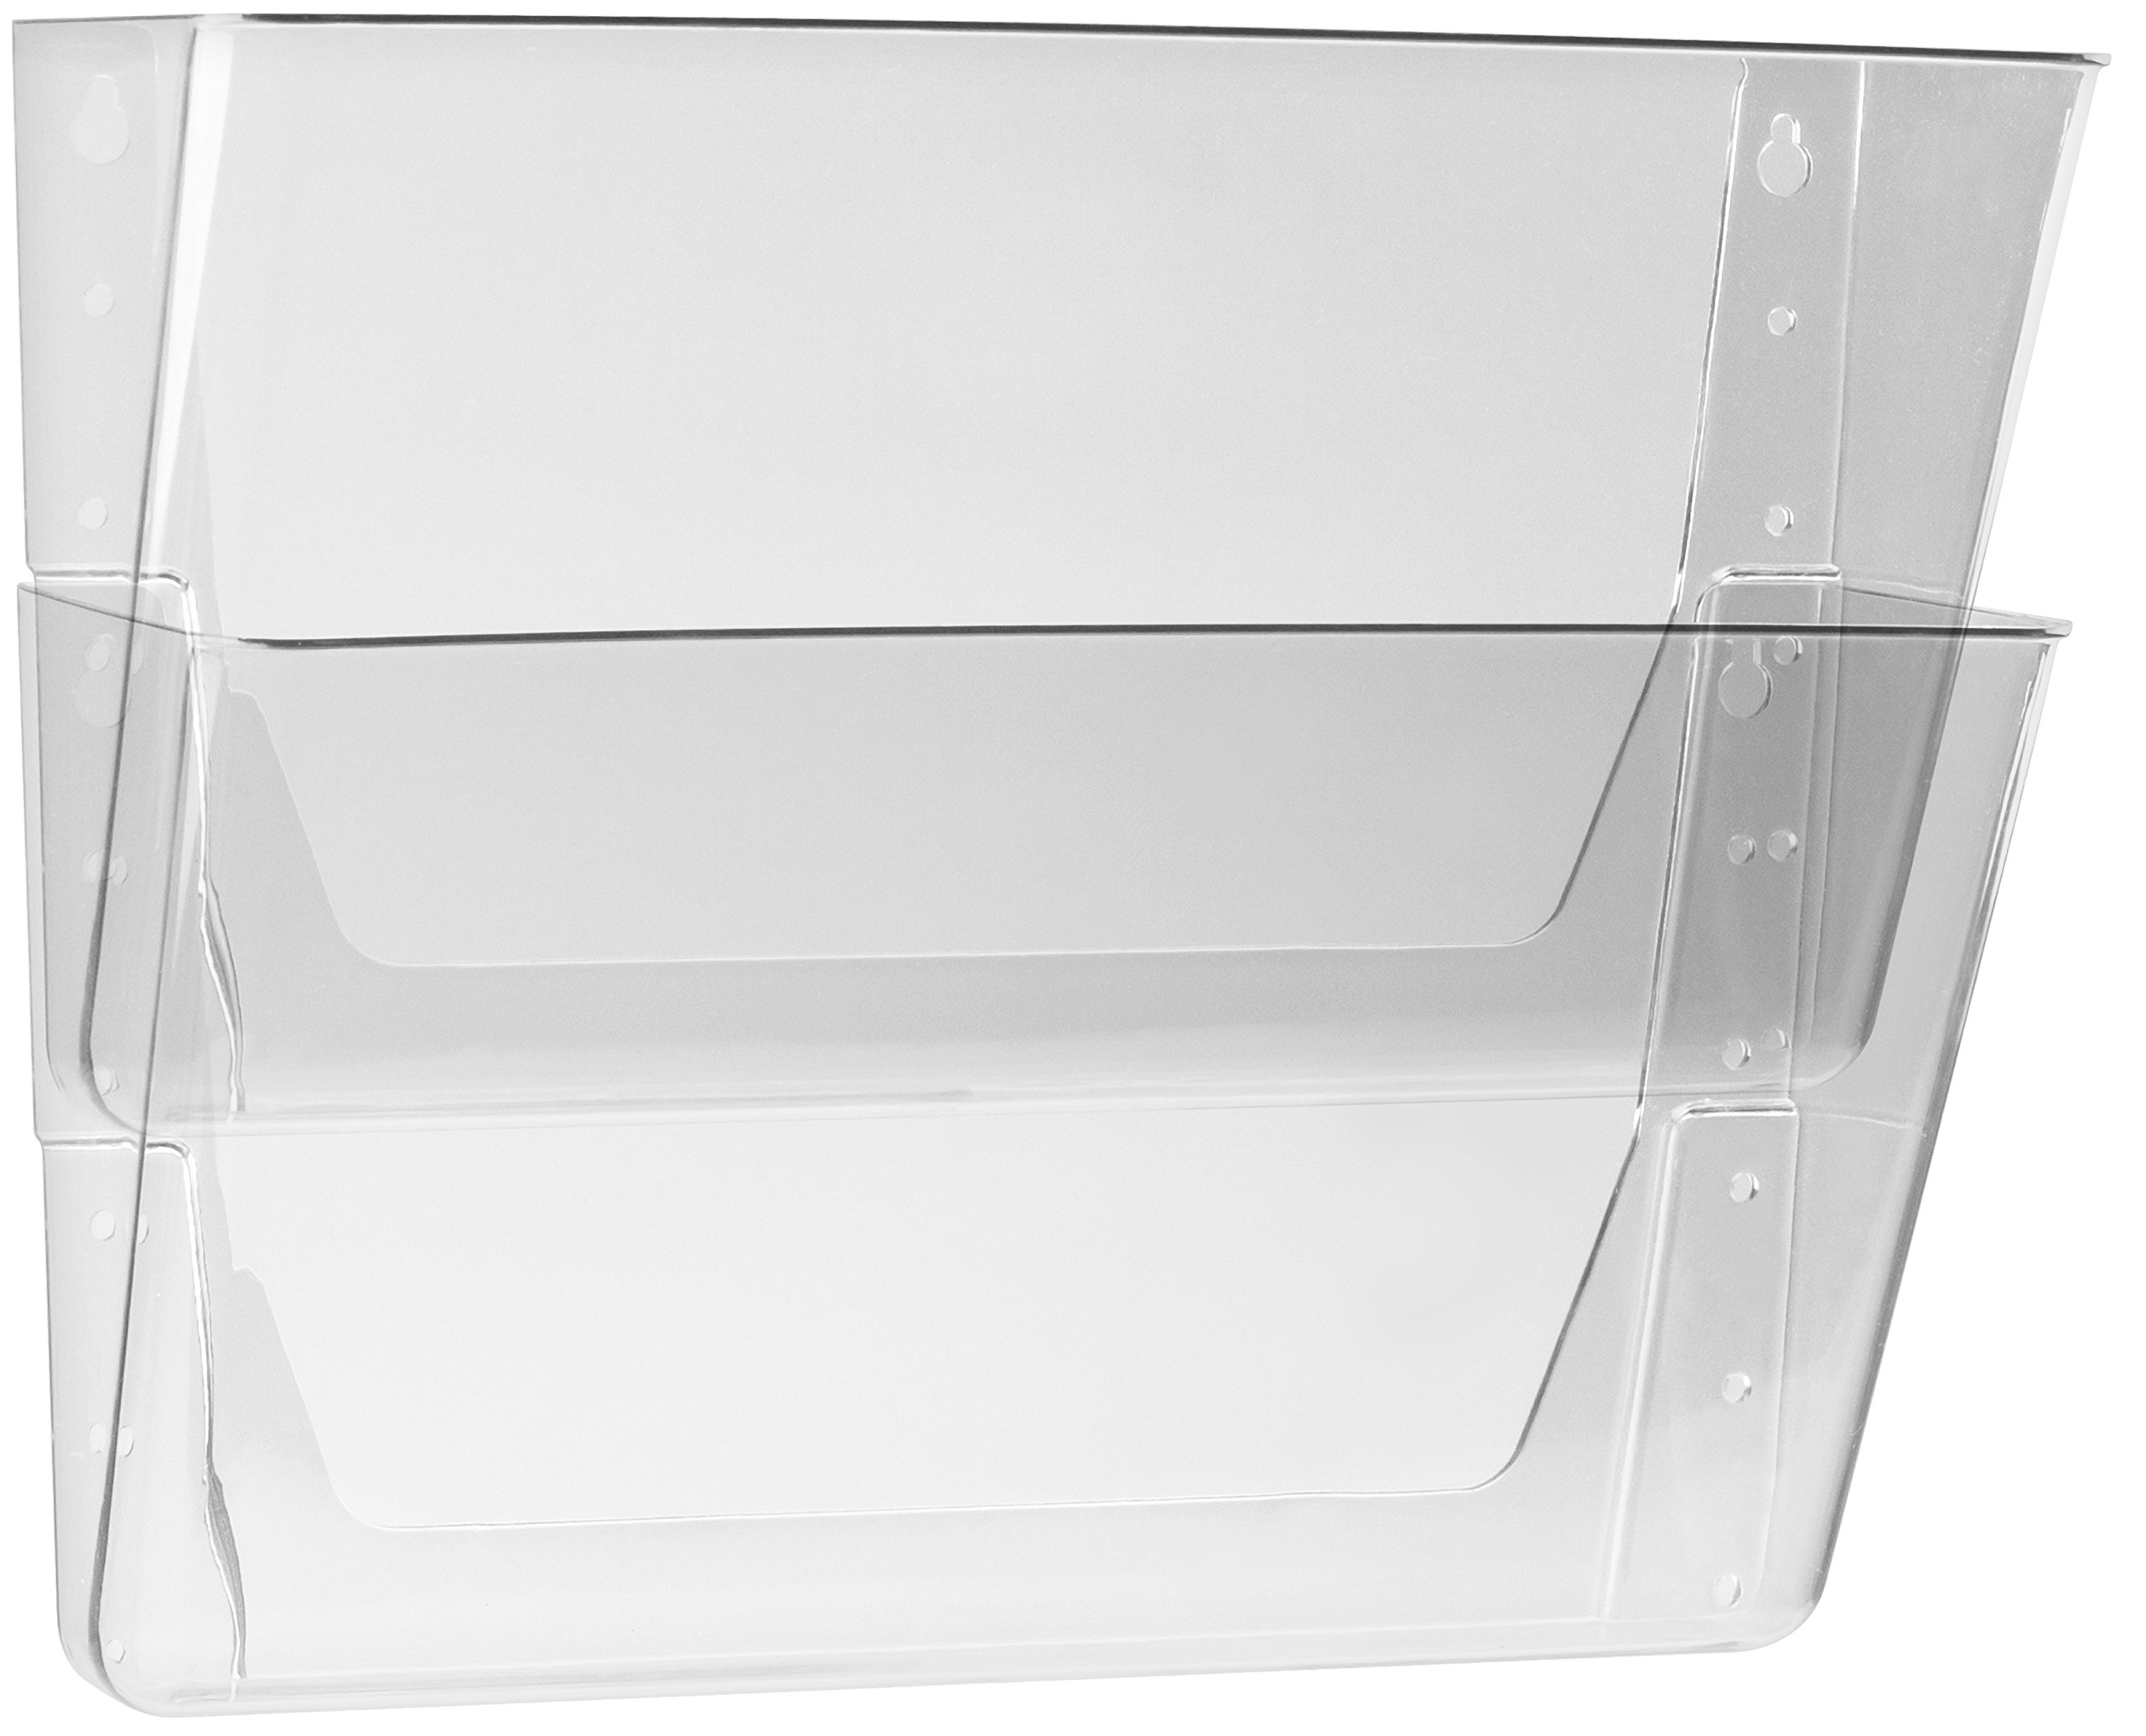 Storex Letter Sized Wall Files, 2-Pack, Clear, Case of 6 (STX70223B06C)